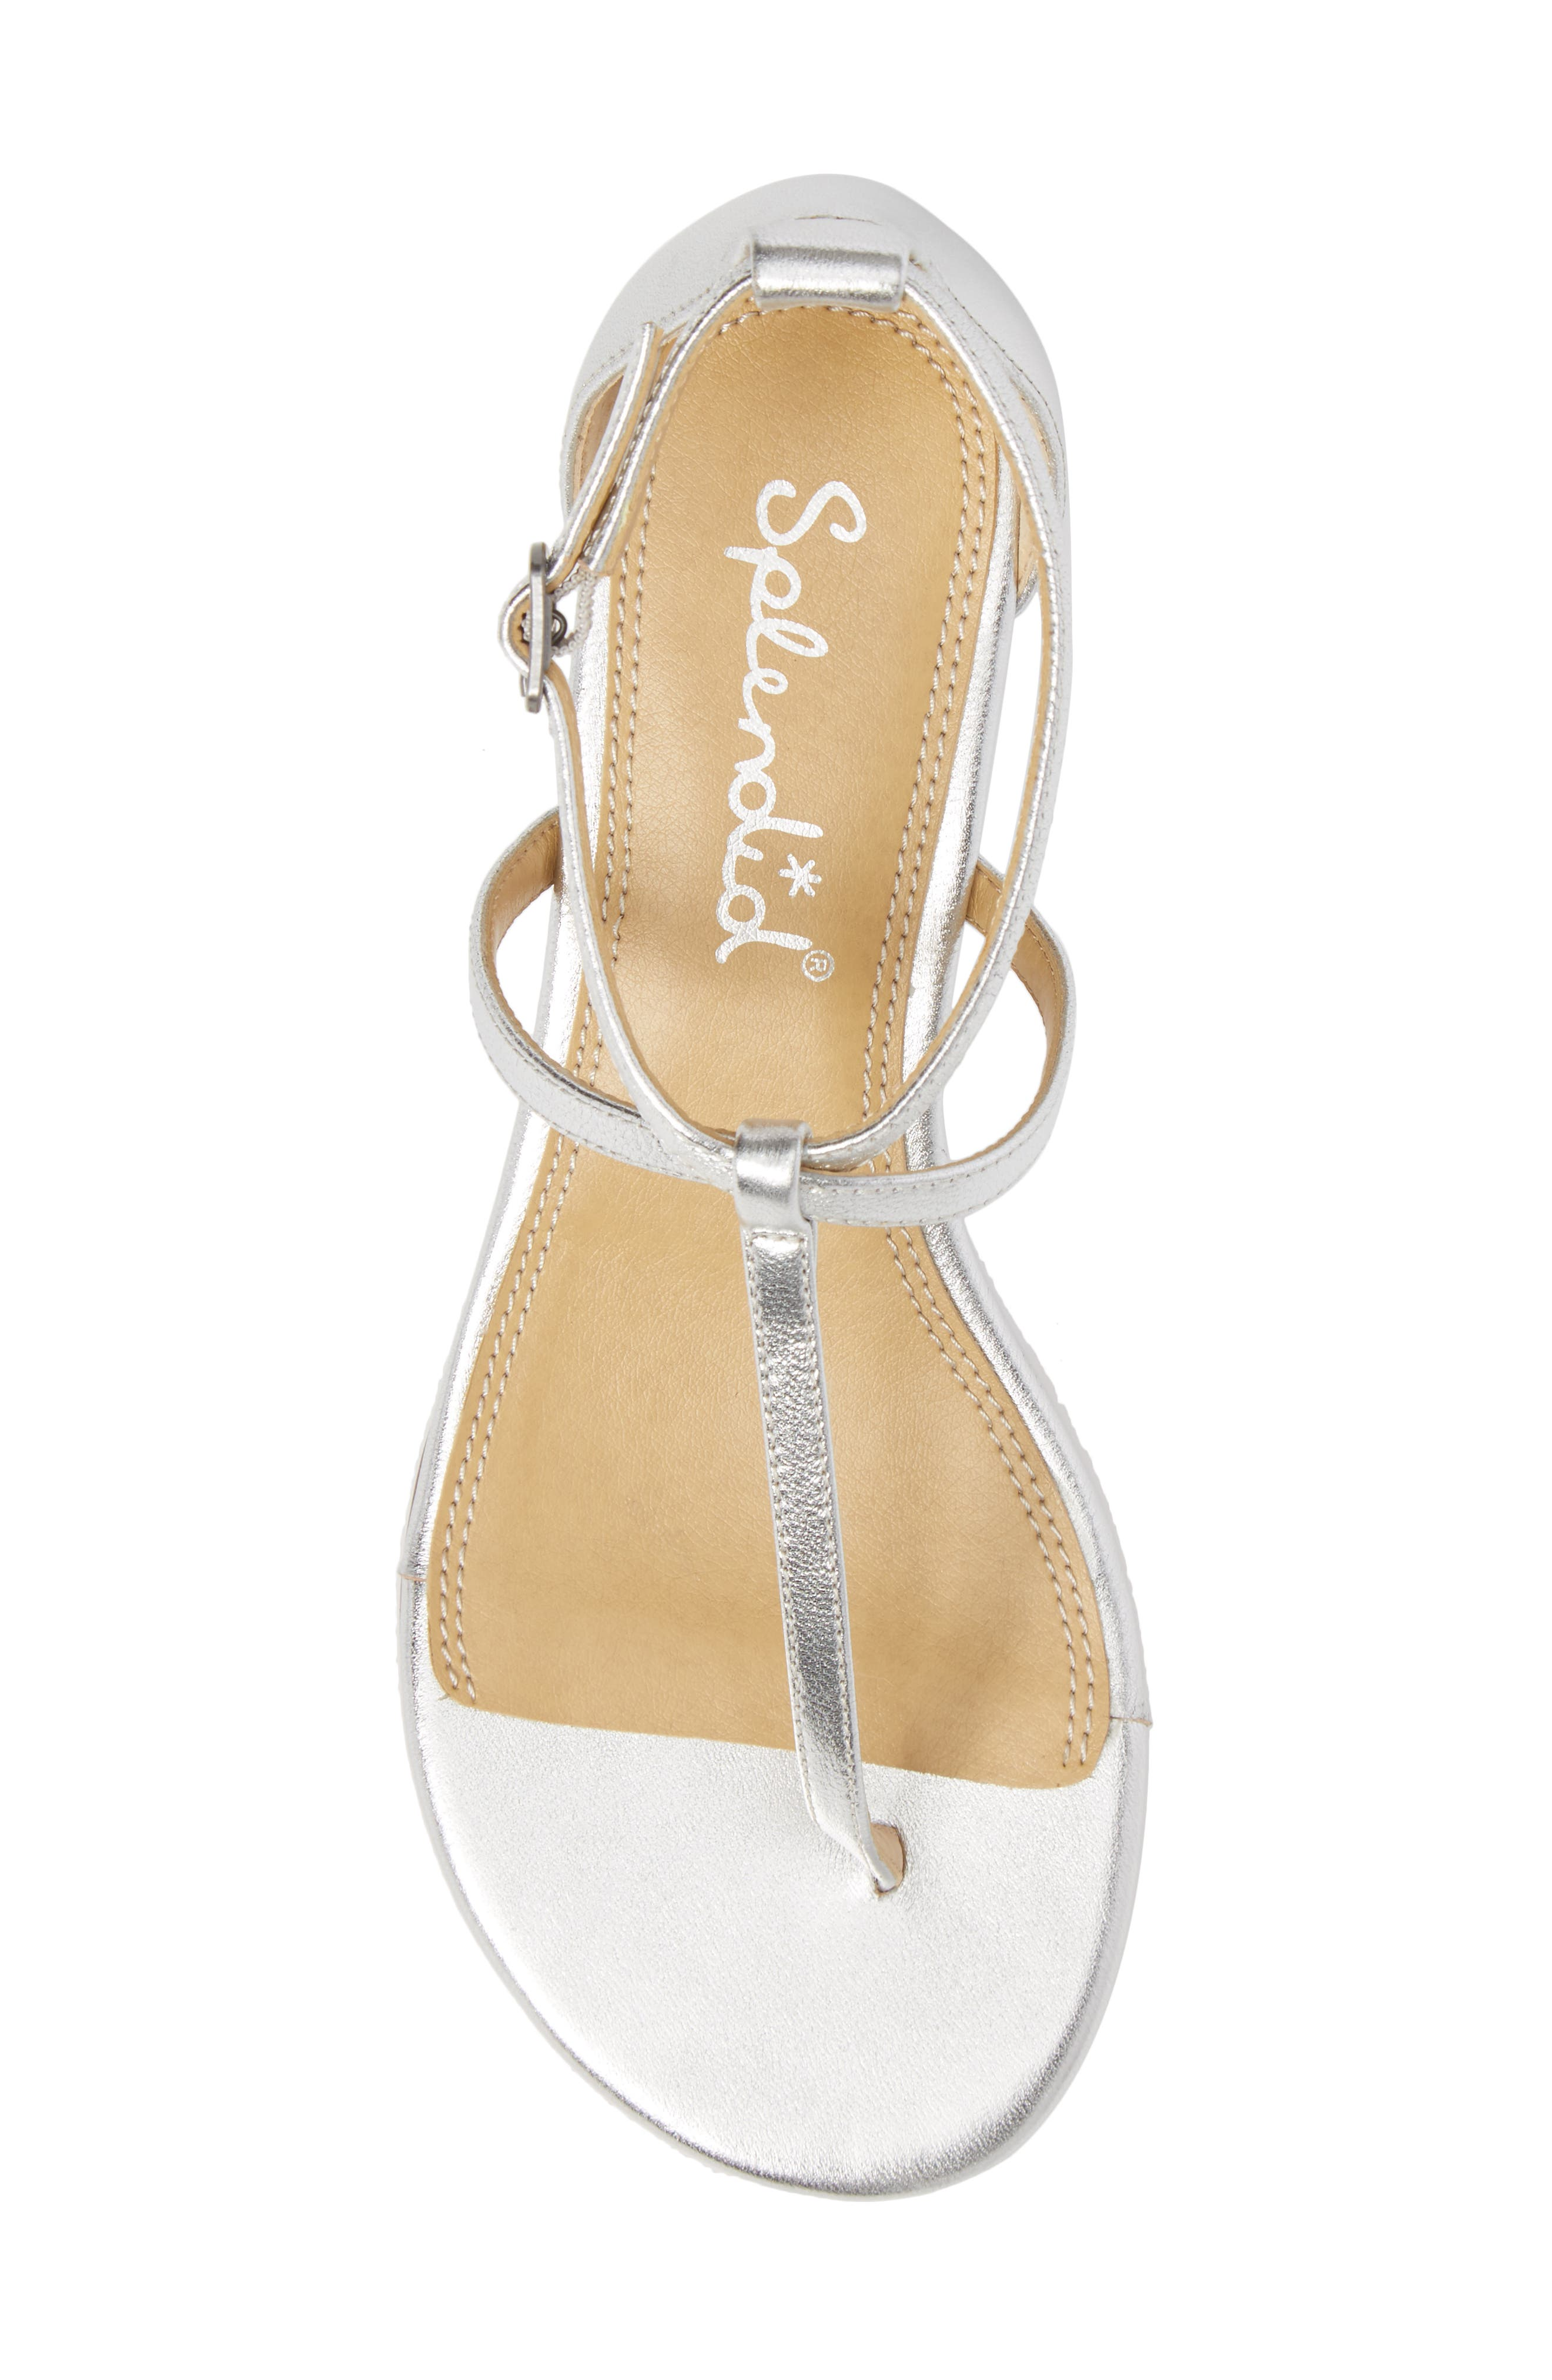 Bryce T-Strap Wedge Sandal,                             Alternate thumbnail 5, color,                             Silver Metallic Leather